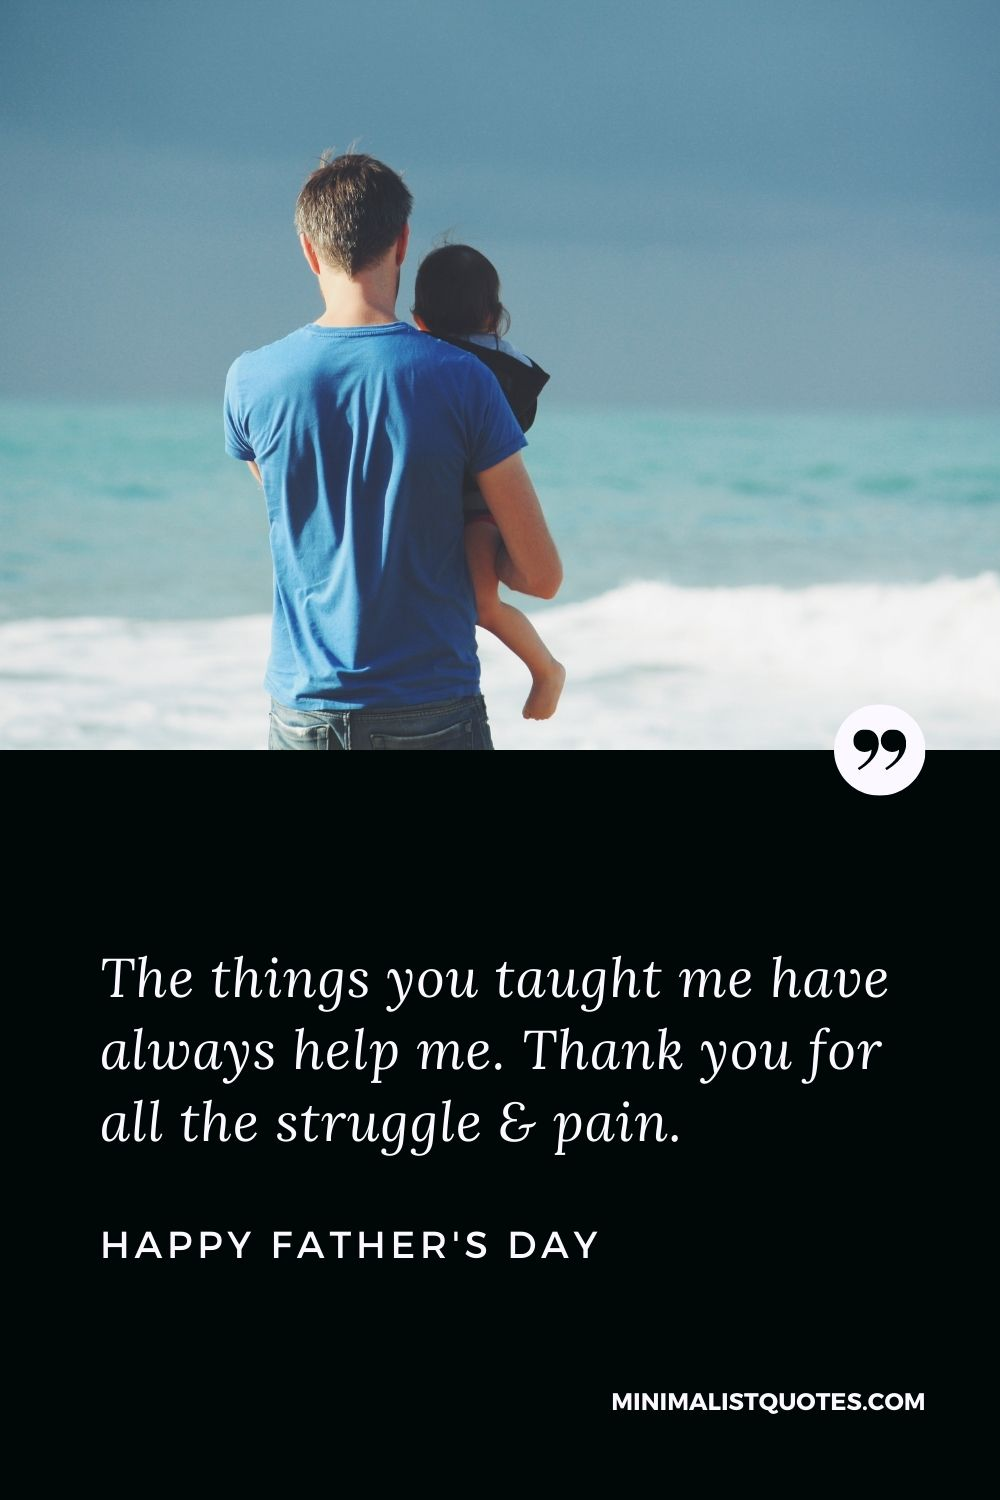 Father's Day Wish & Message With HD Image: The things you taught me have always helpme. Thank you for all the struggle & pain. Happy Father's Day!